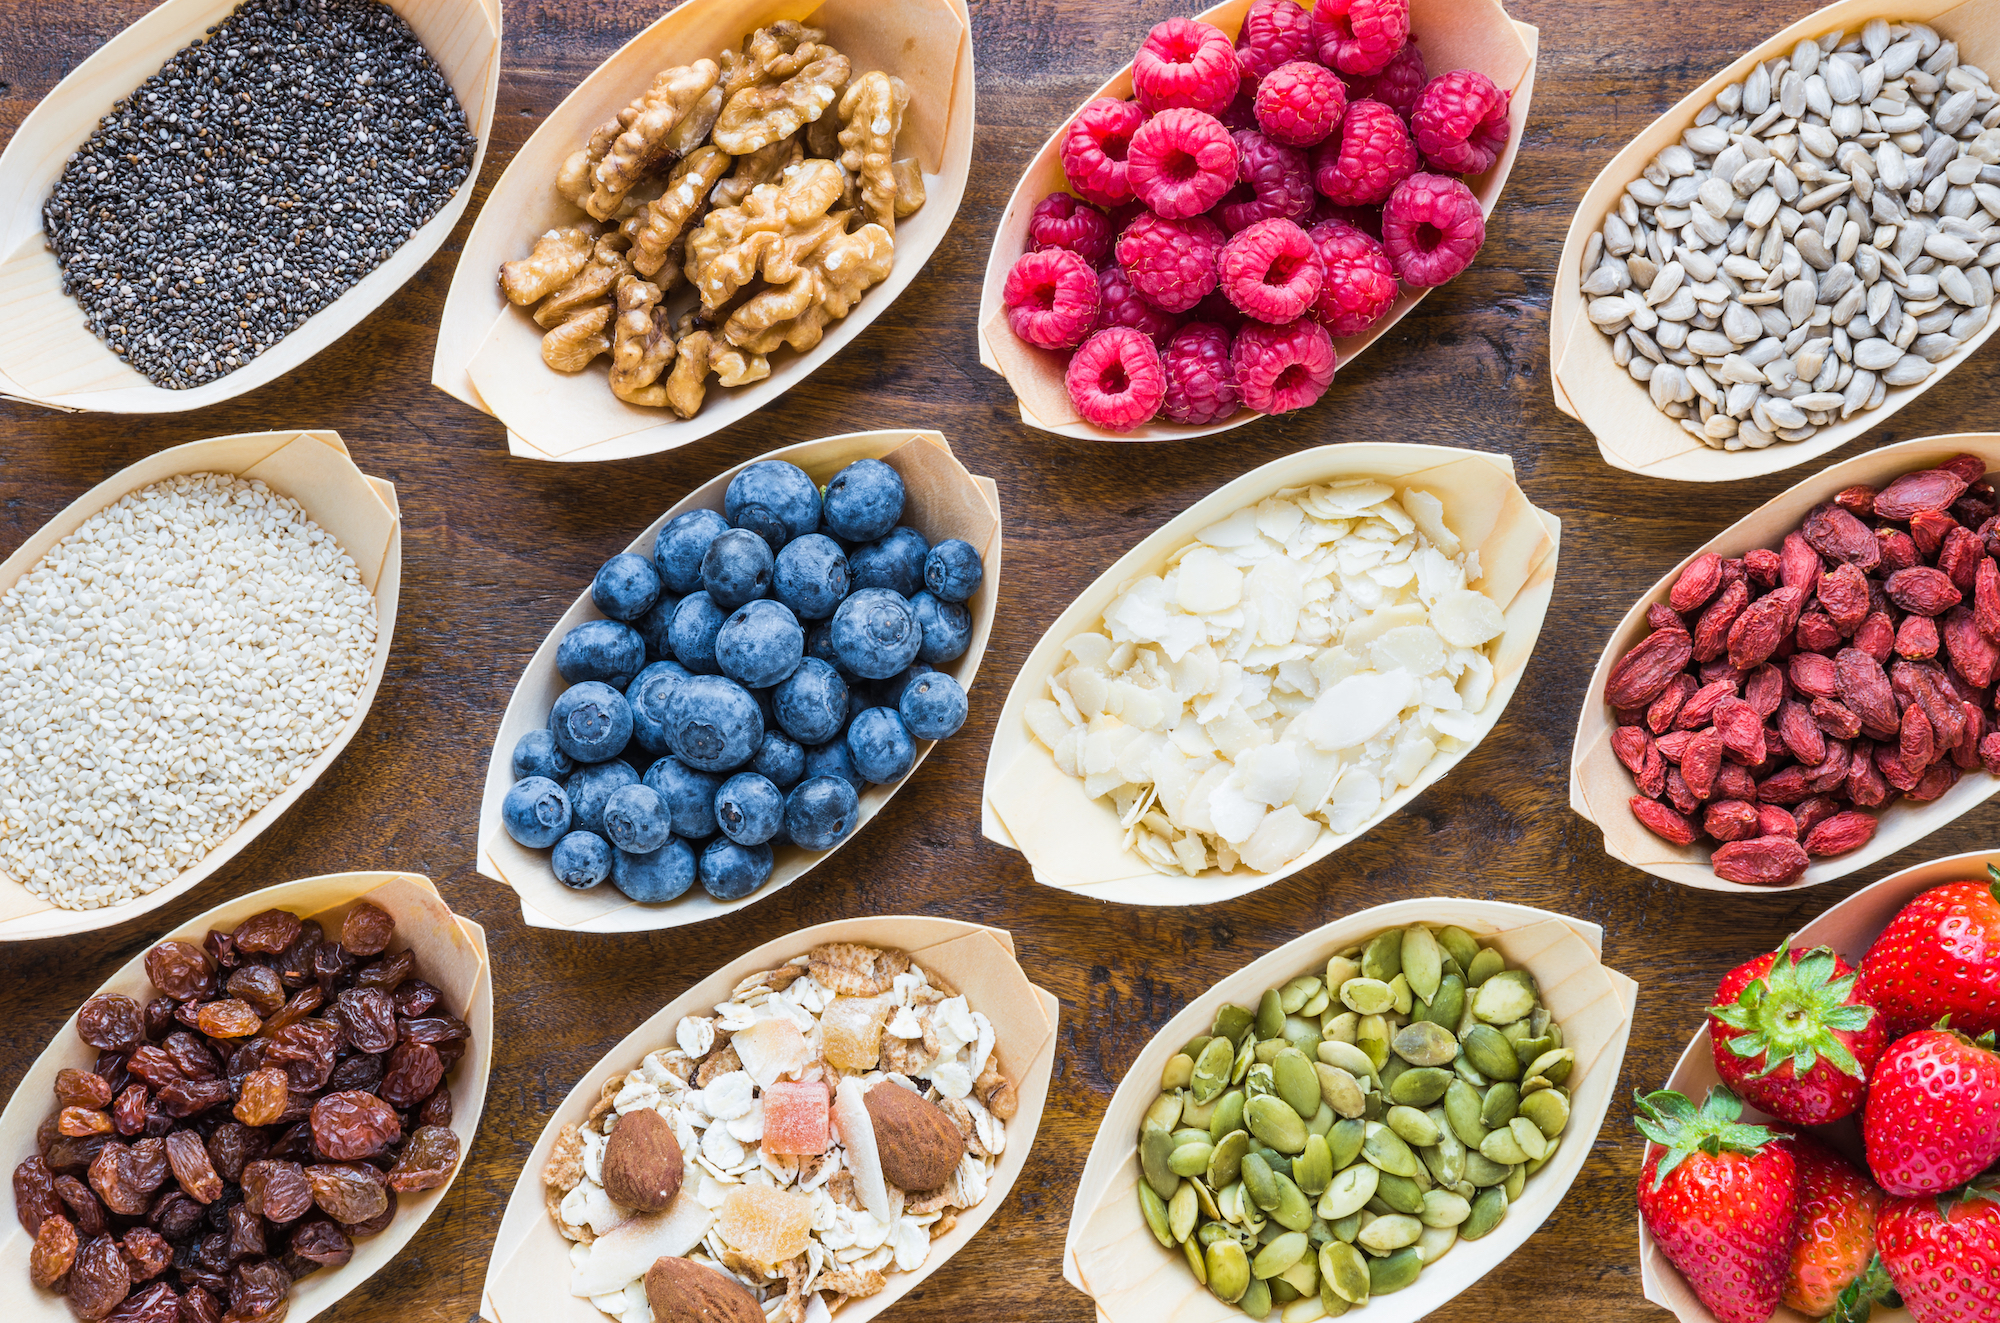 False Facts About Health Foods You Always Thought Were True